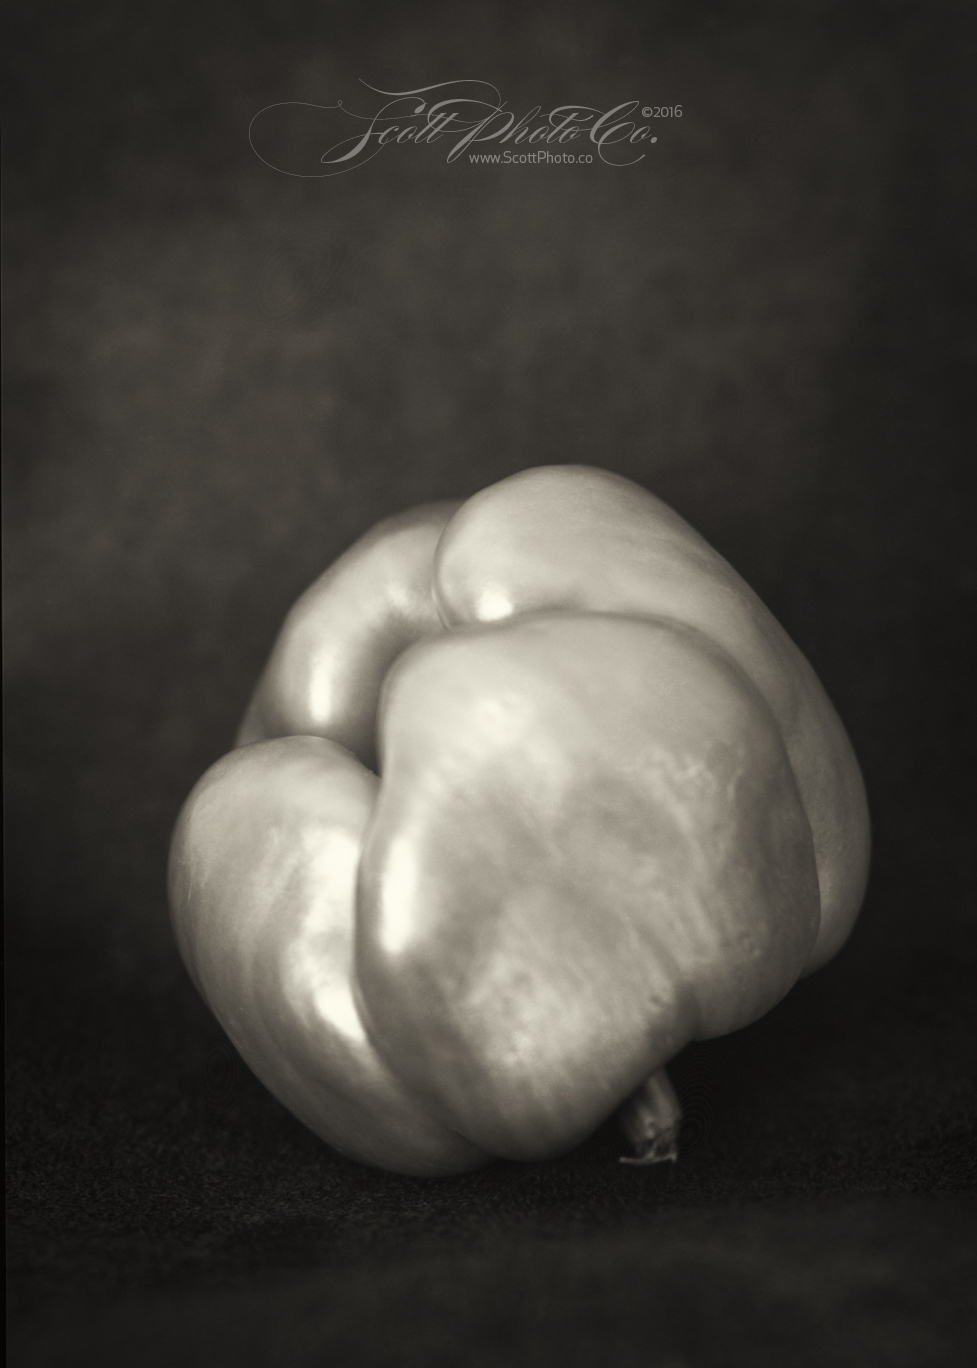 Pepper July 2016 Century Studio Camera 9 + 42cm Heliar + 5x7 Foma 100 + XTOL 1:1 Window light